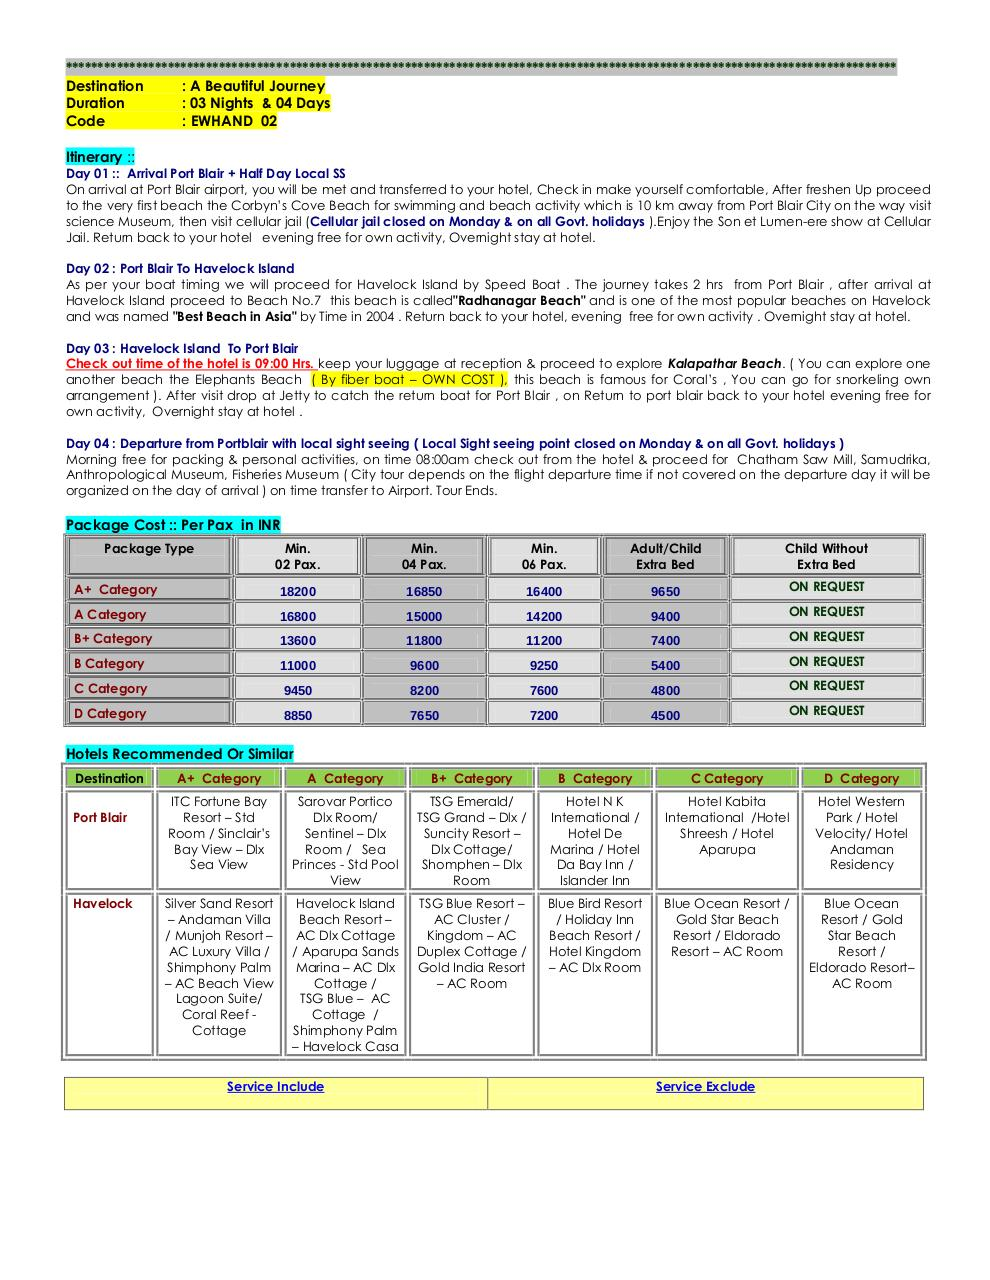 Preview of PDF document ewh-andaman-package-2015-16.pdf